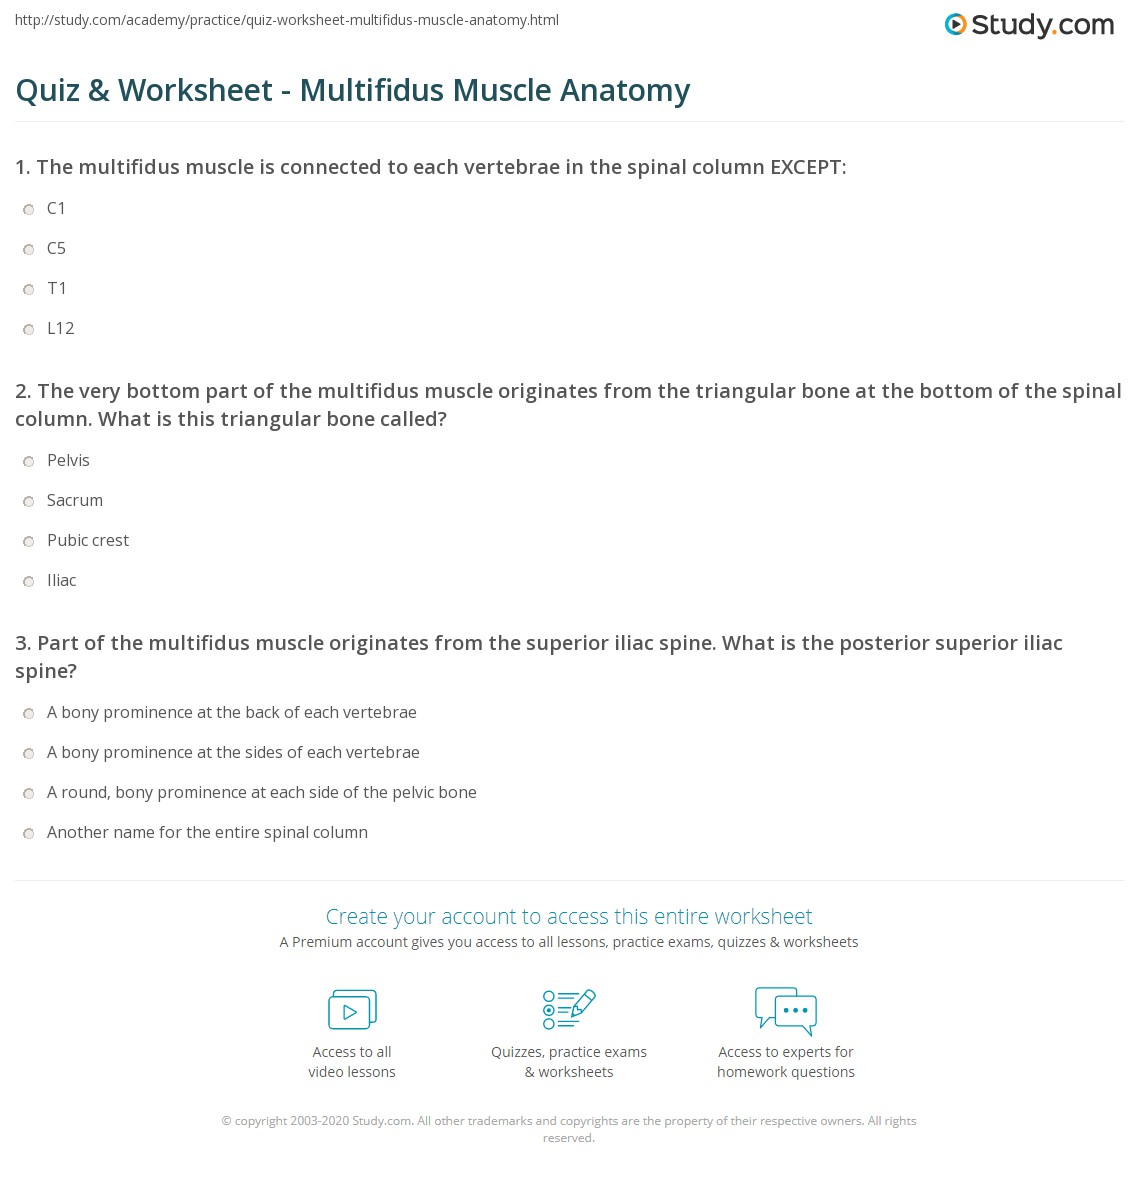 Quiz & Worksheet - Multifidus Muscle Anatomy | Study.com